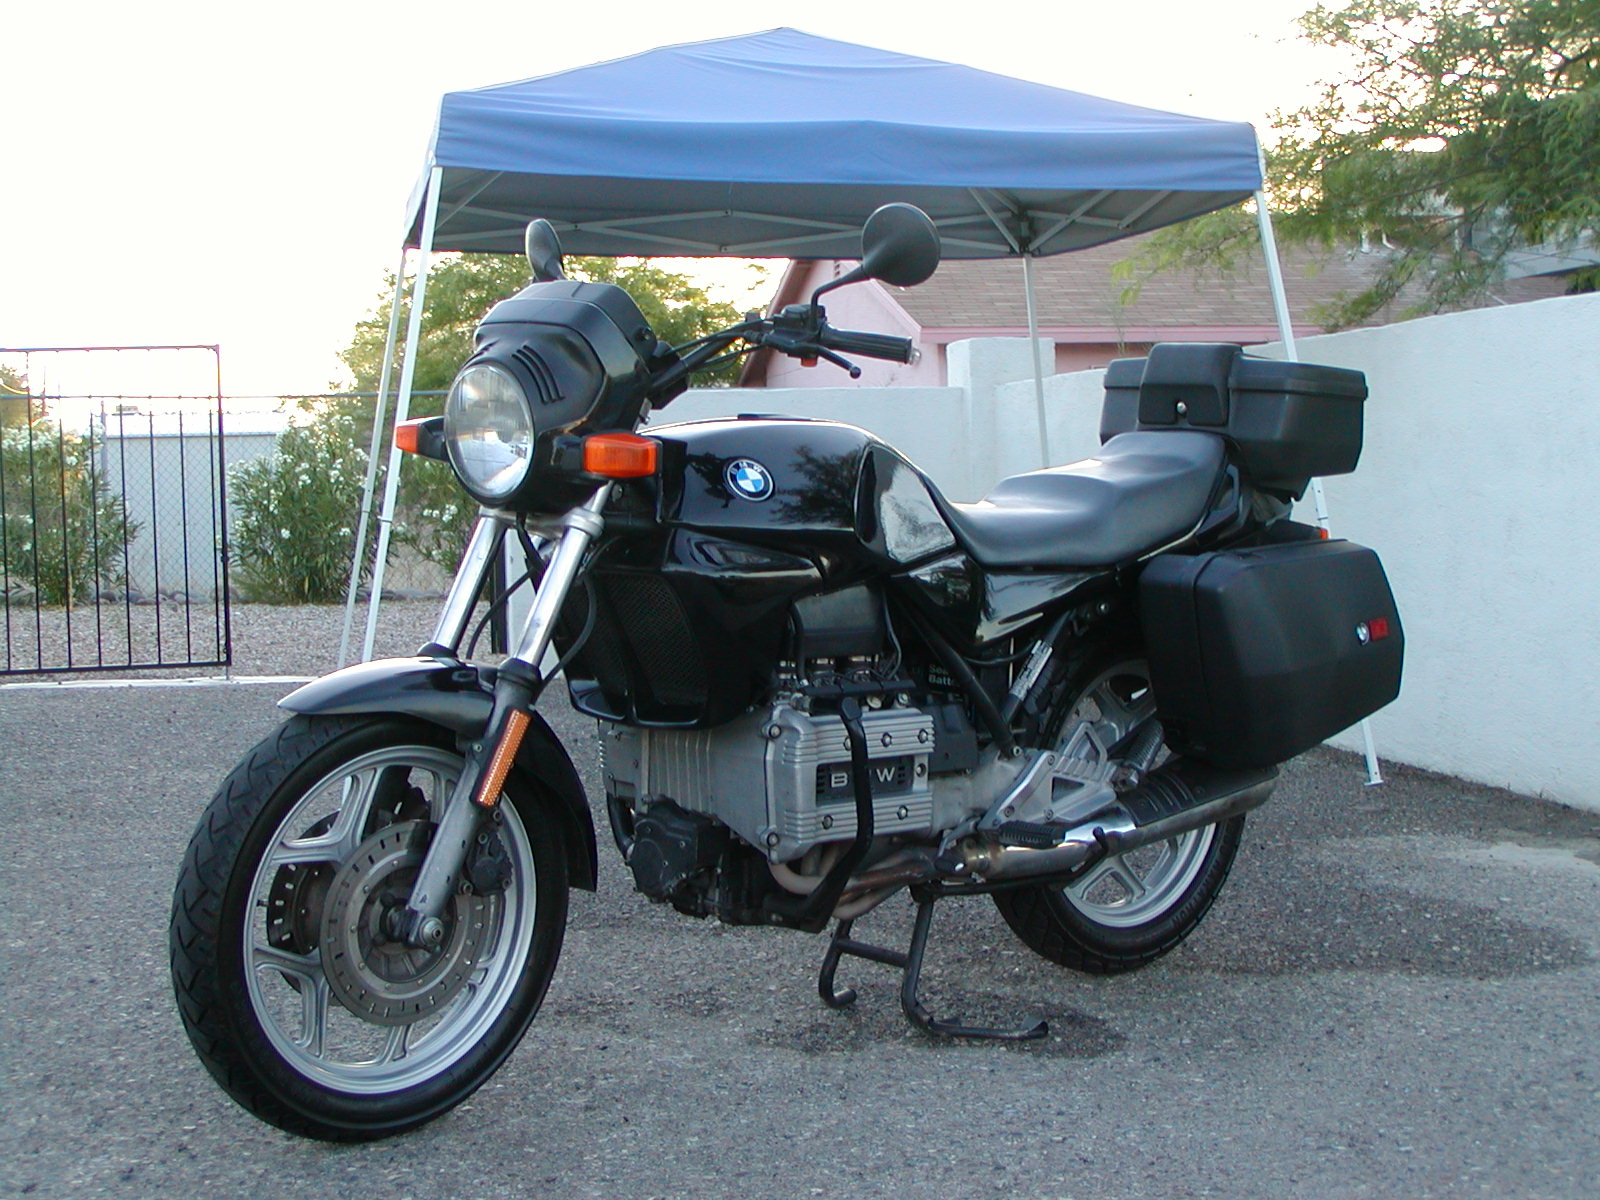 BMW K75RT 1995 images #77496